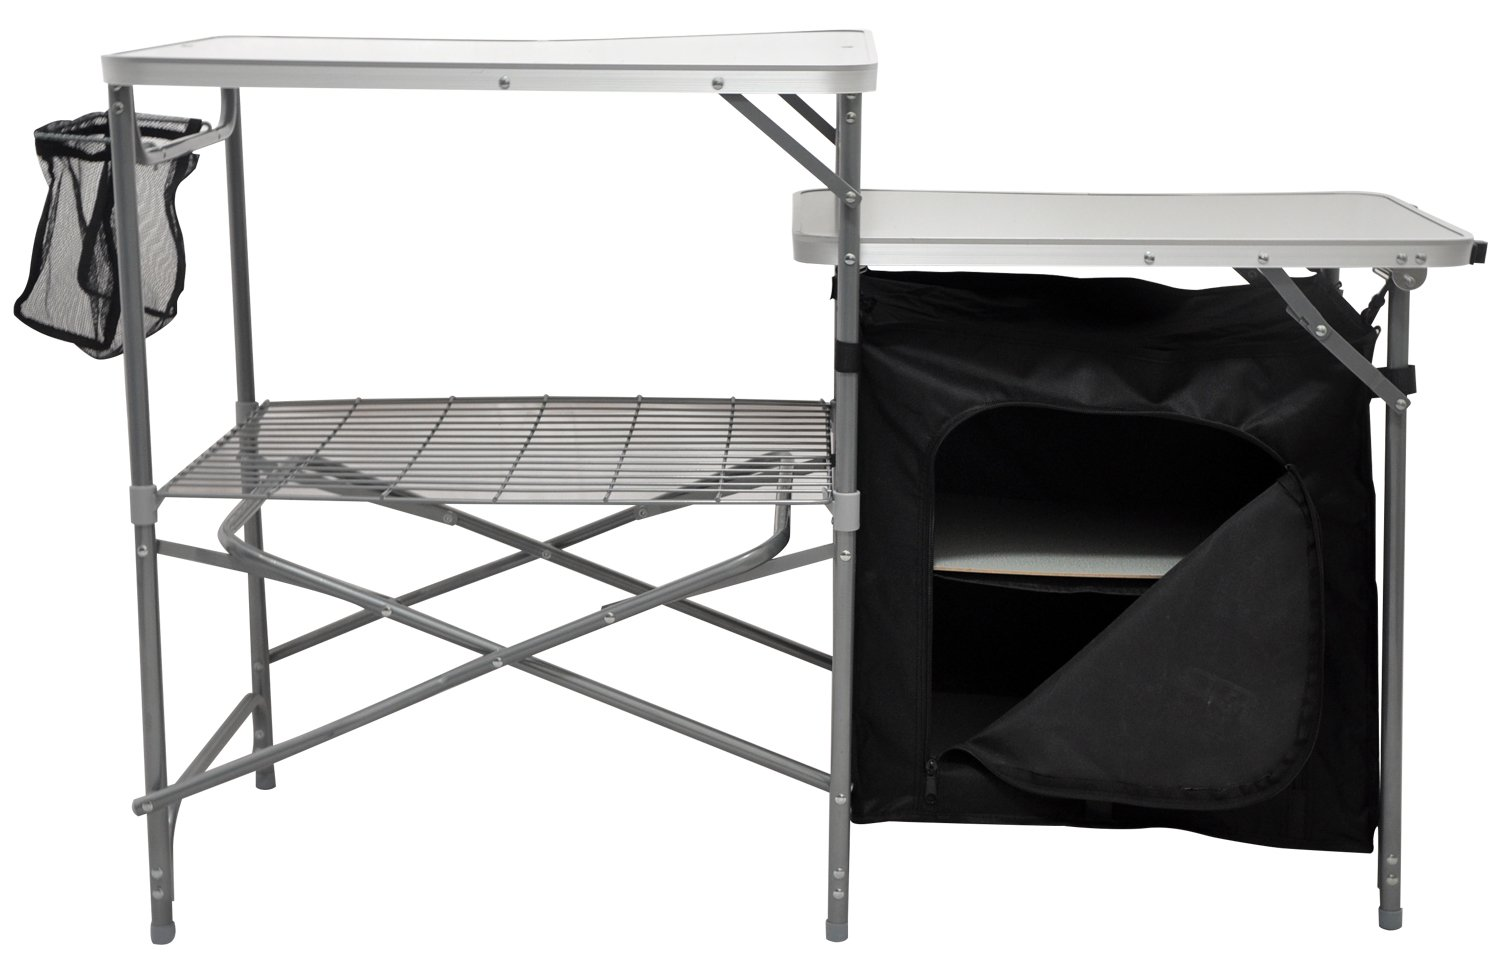 Andes Camping Field Kitchen Worktop Table Stand With Cupboard 1